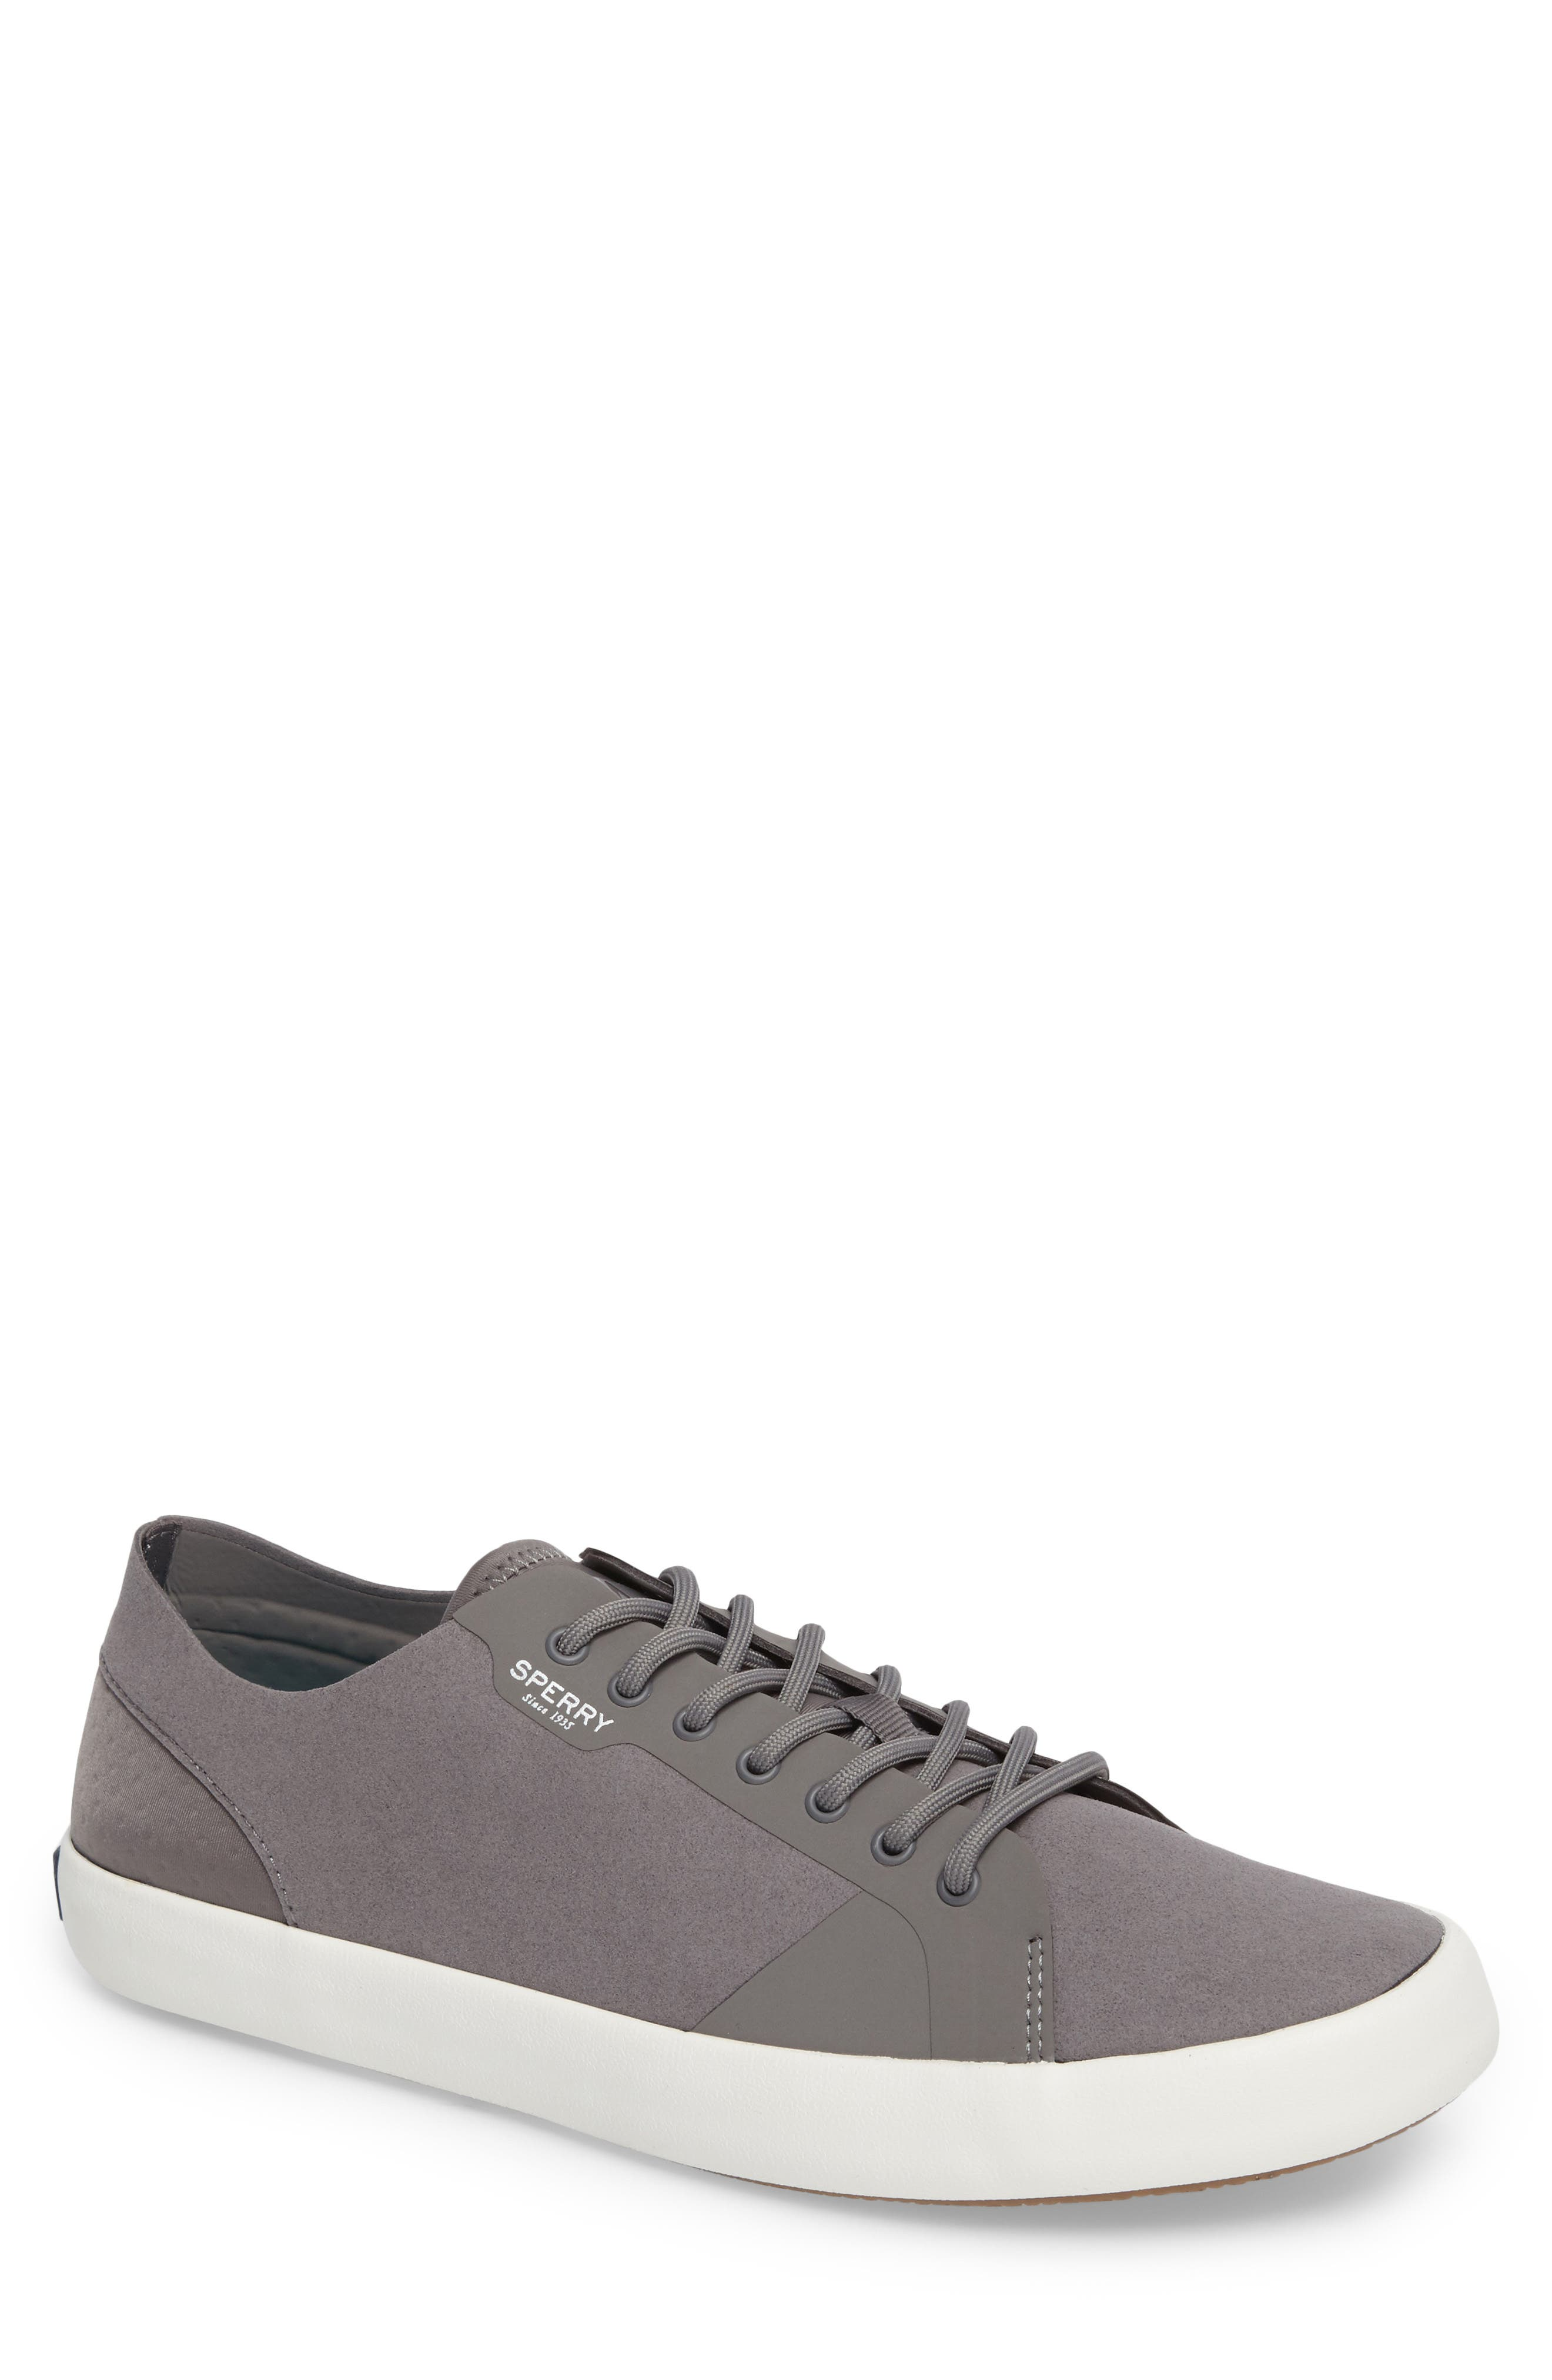 Flex Deck LTT Sneaker,                             Main thumbnail 1, color,                             GREY